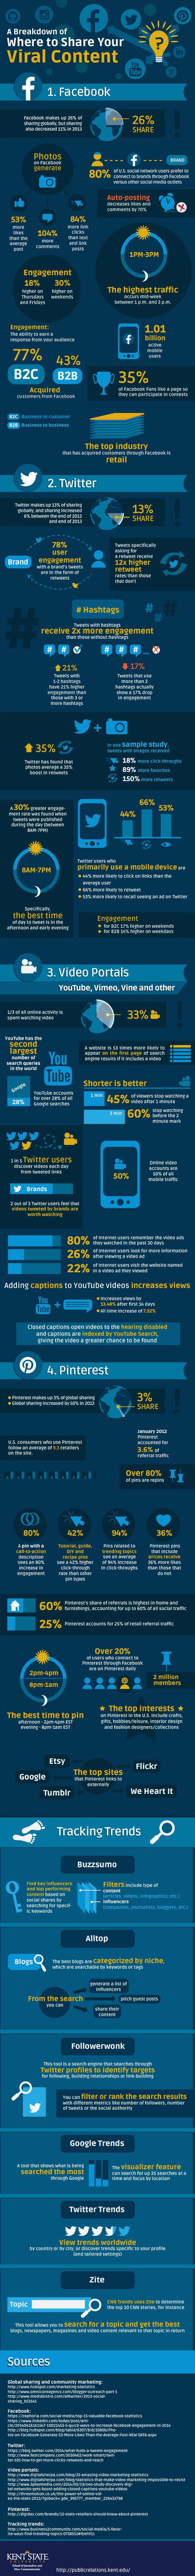 Where to Share Your Viral Content - Get the Best Results Out of Your Content - #infographic